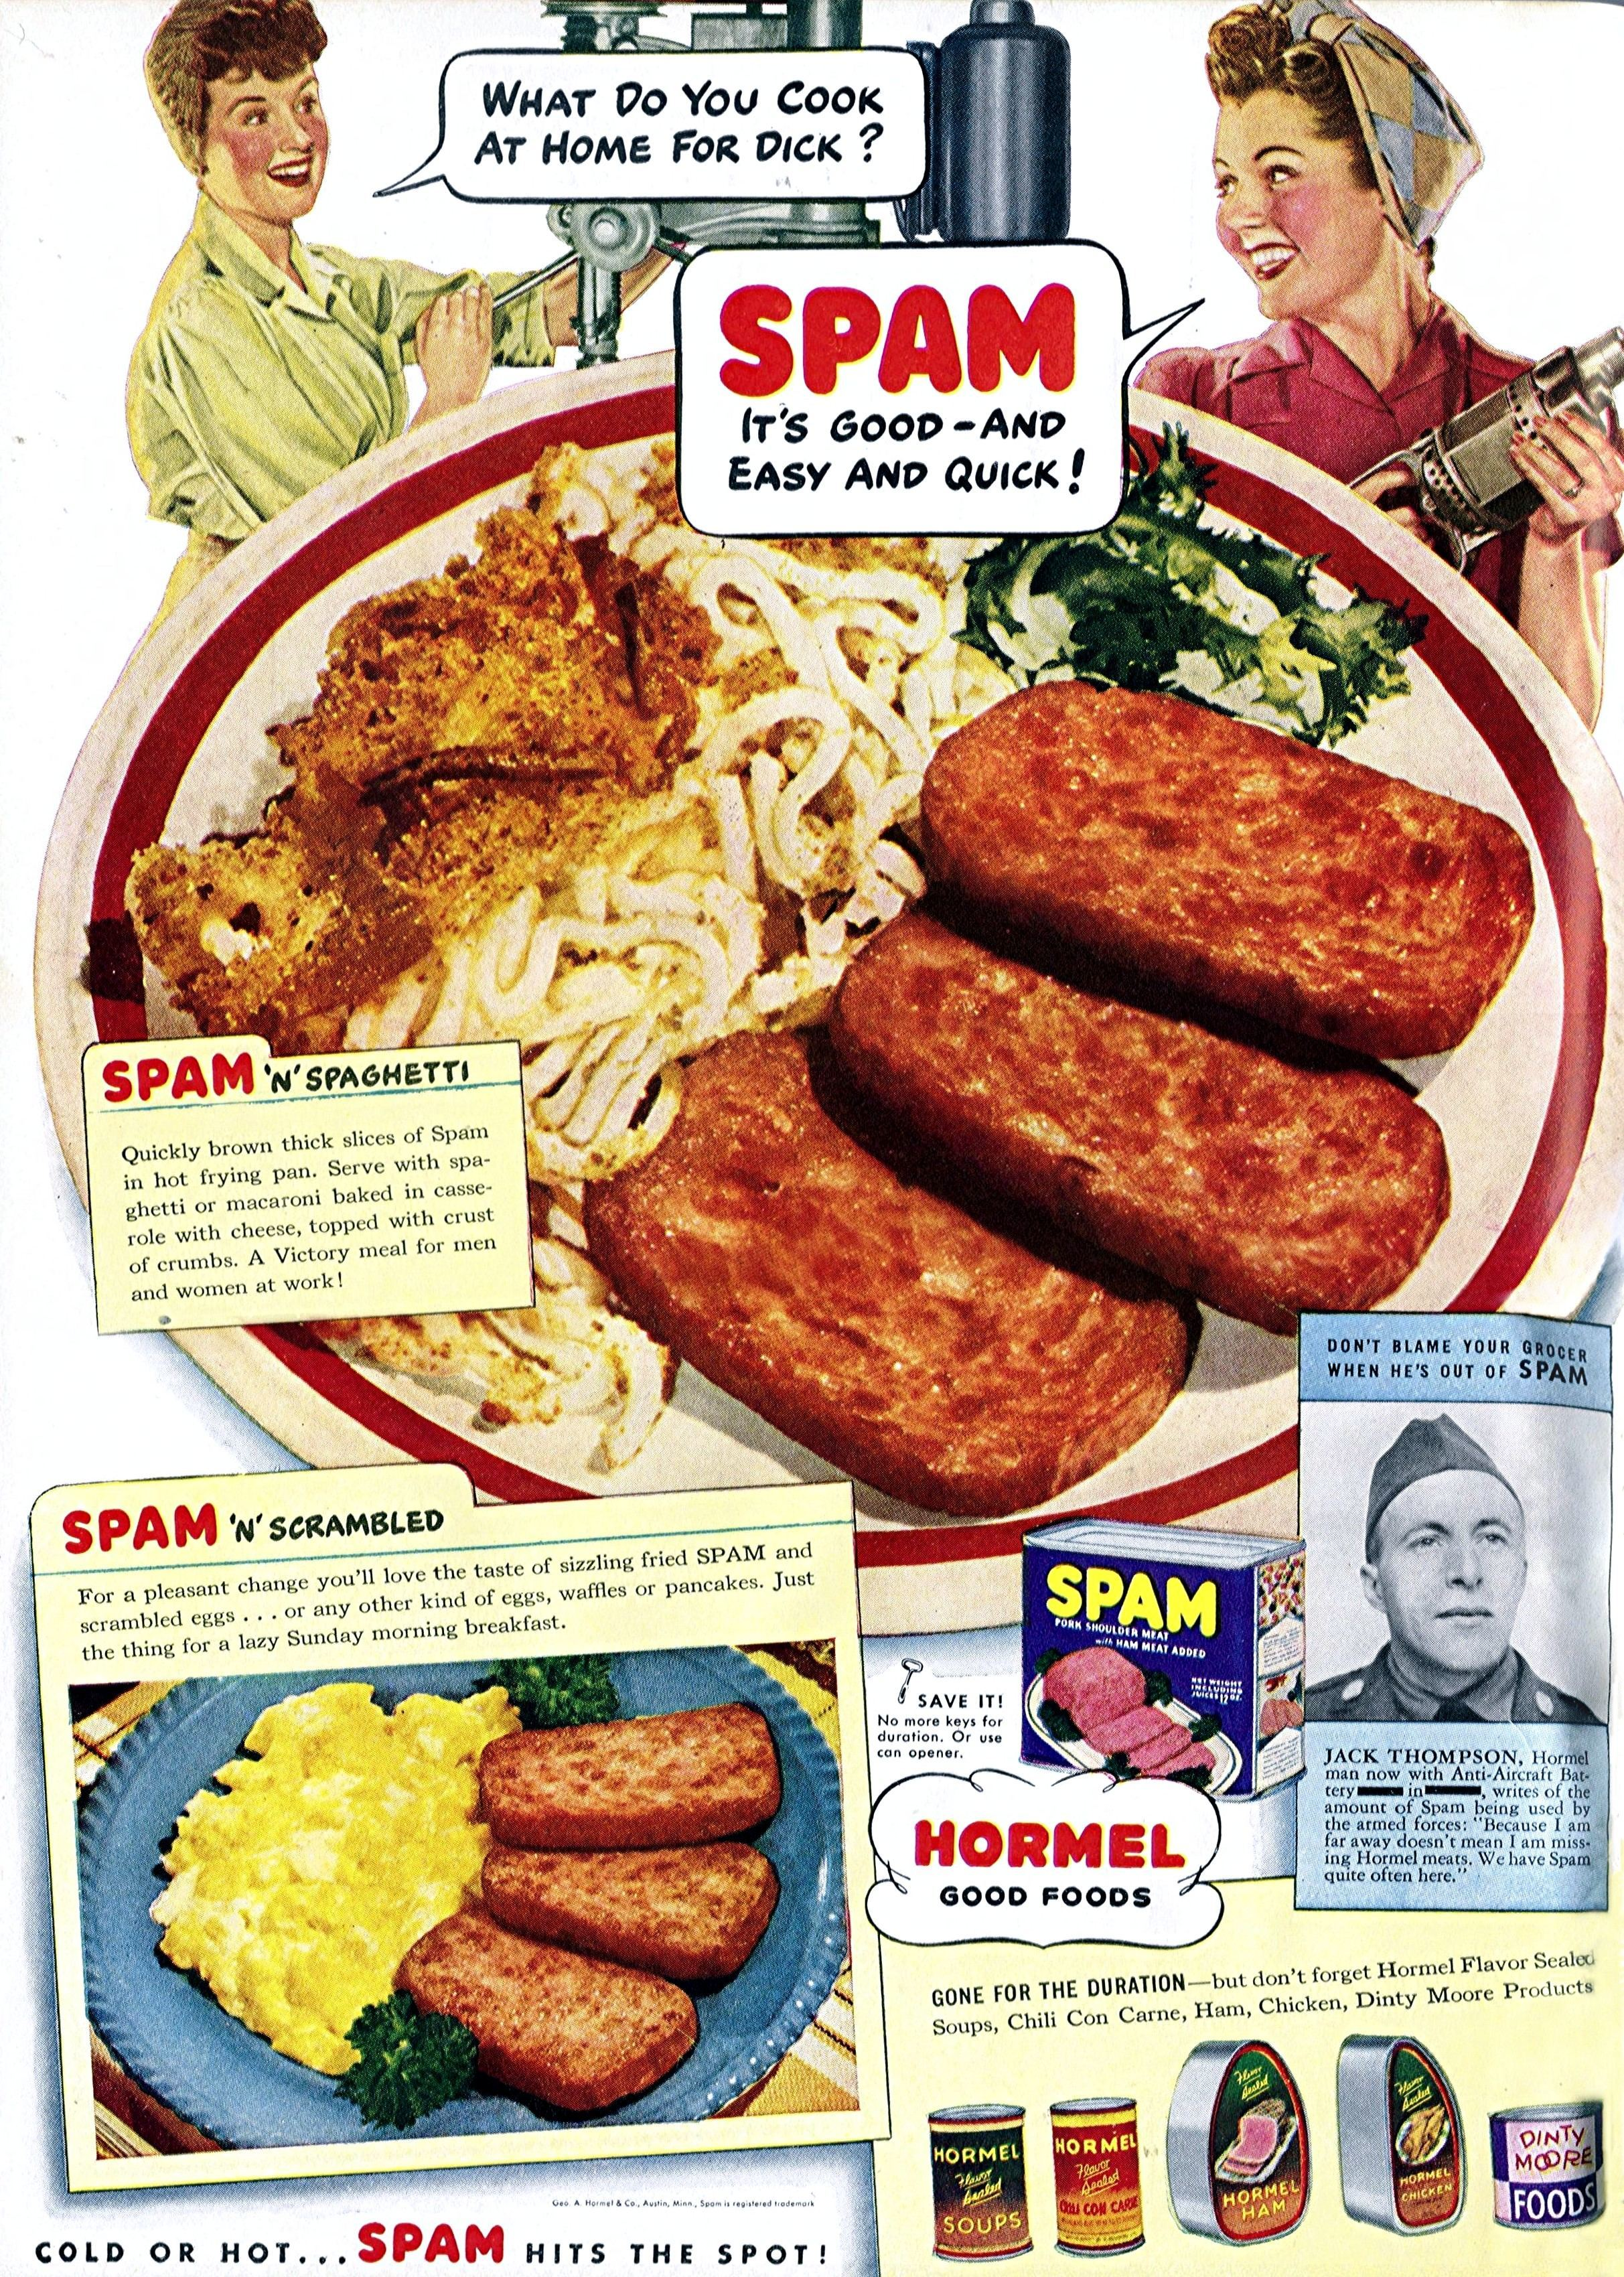 1943 - Spam for Victory! Published in the May 1943 issue of Woman's Day magazine